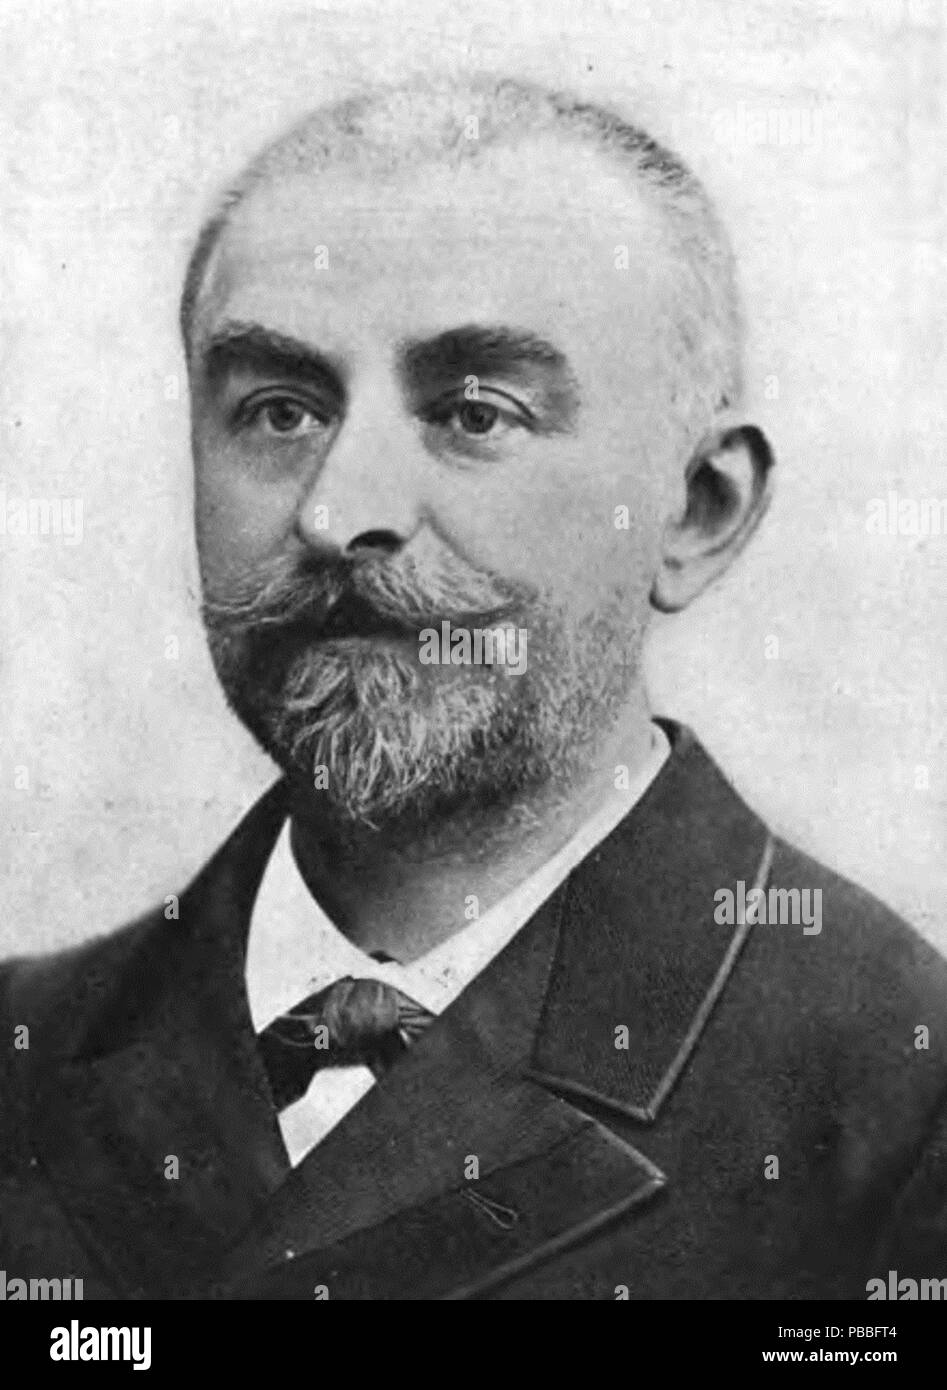 1189 Photograph of Joris-Karl Huysmans Stock Photo